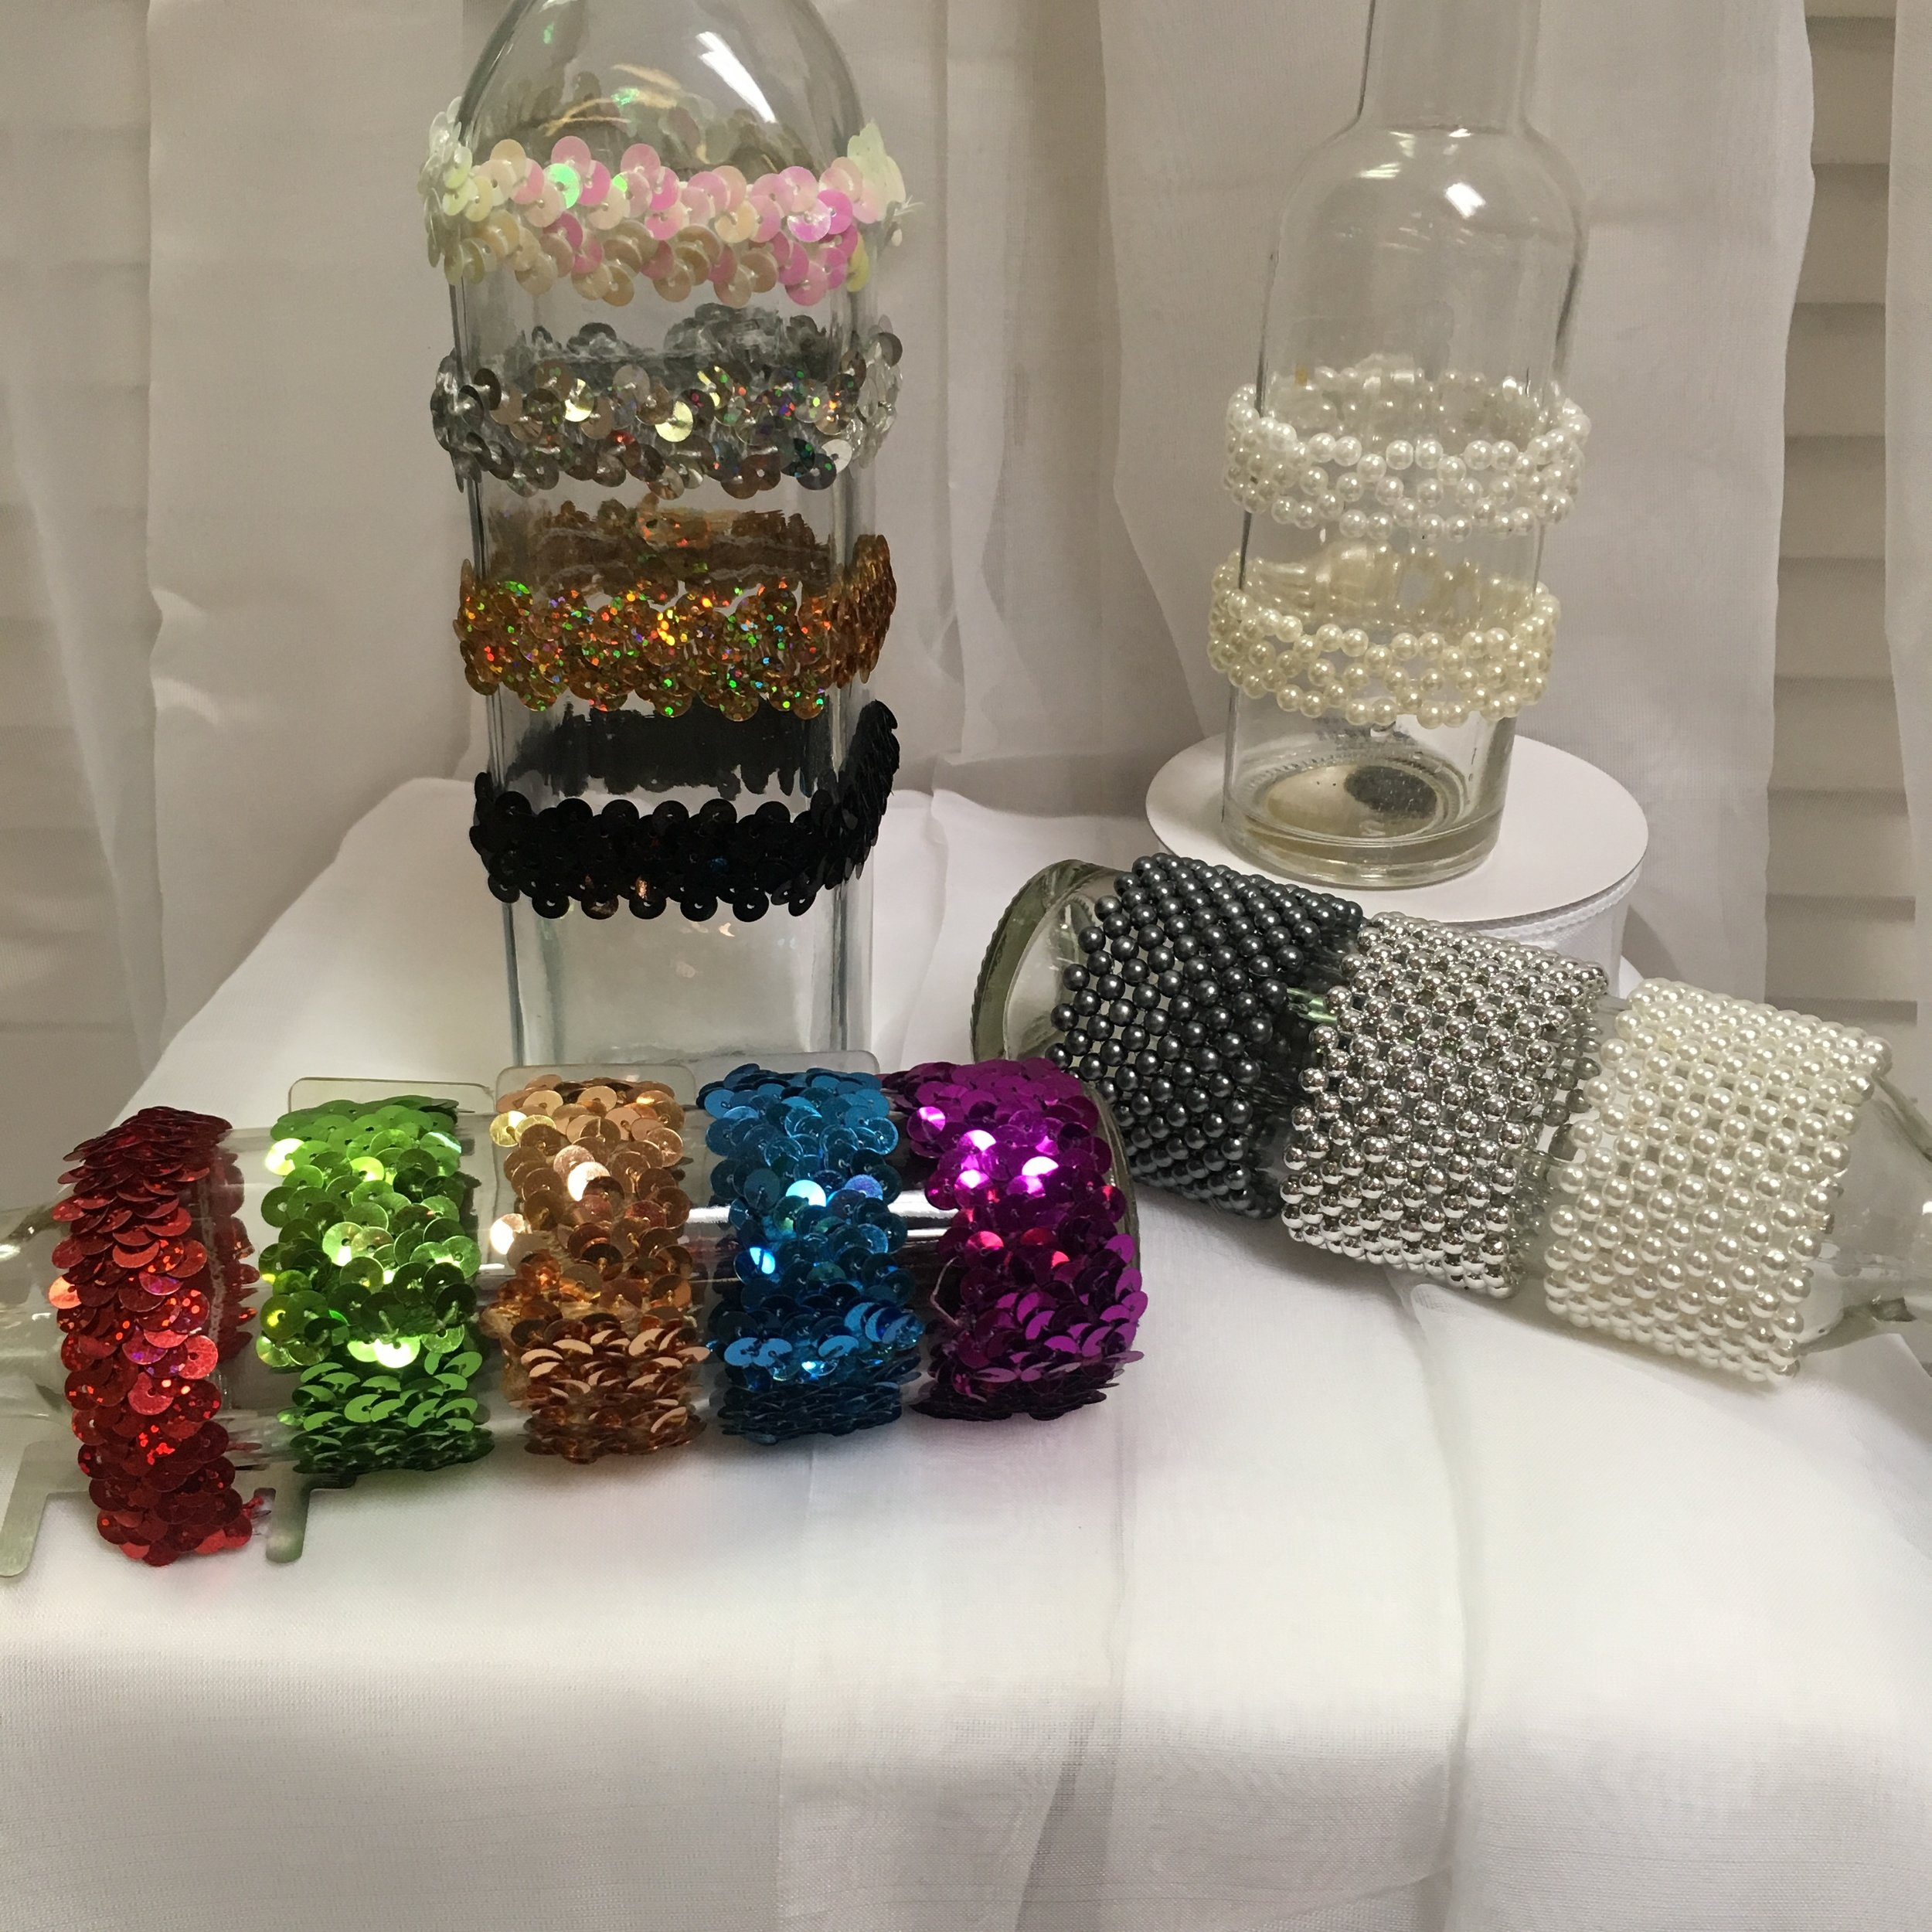 Standard Bracelets: White, Silver, Gold, Black Sequins; Red, Green, Gold, Turquoise, Purple Sequins; White, Ivory Beads; Black, Silver, White Beads